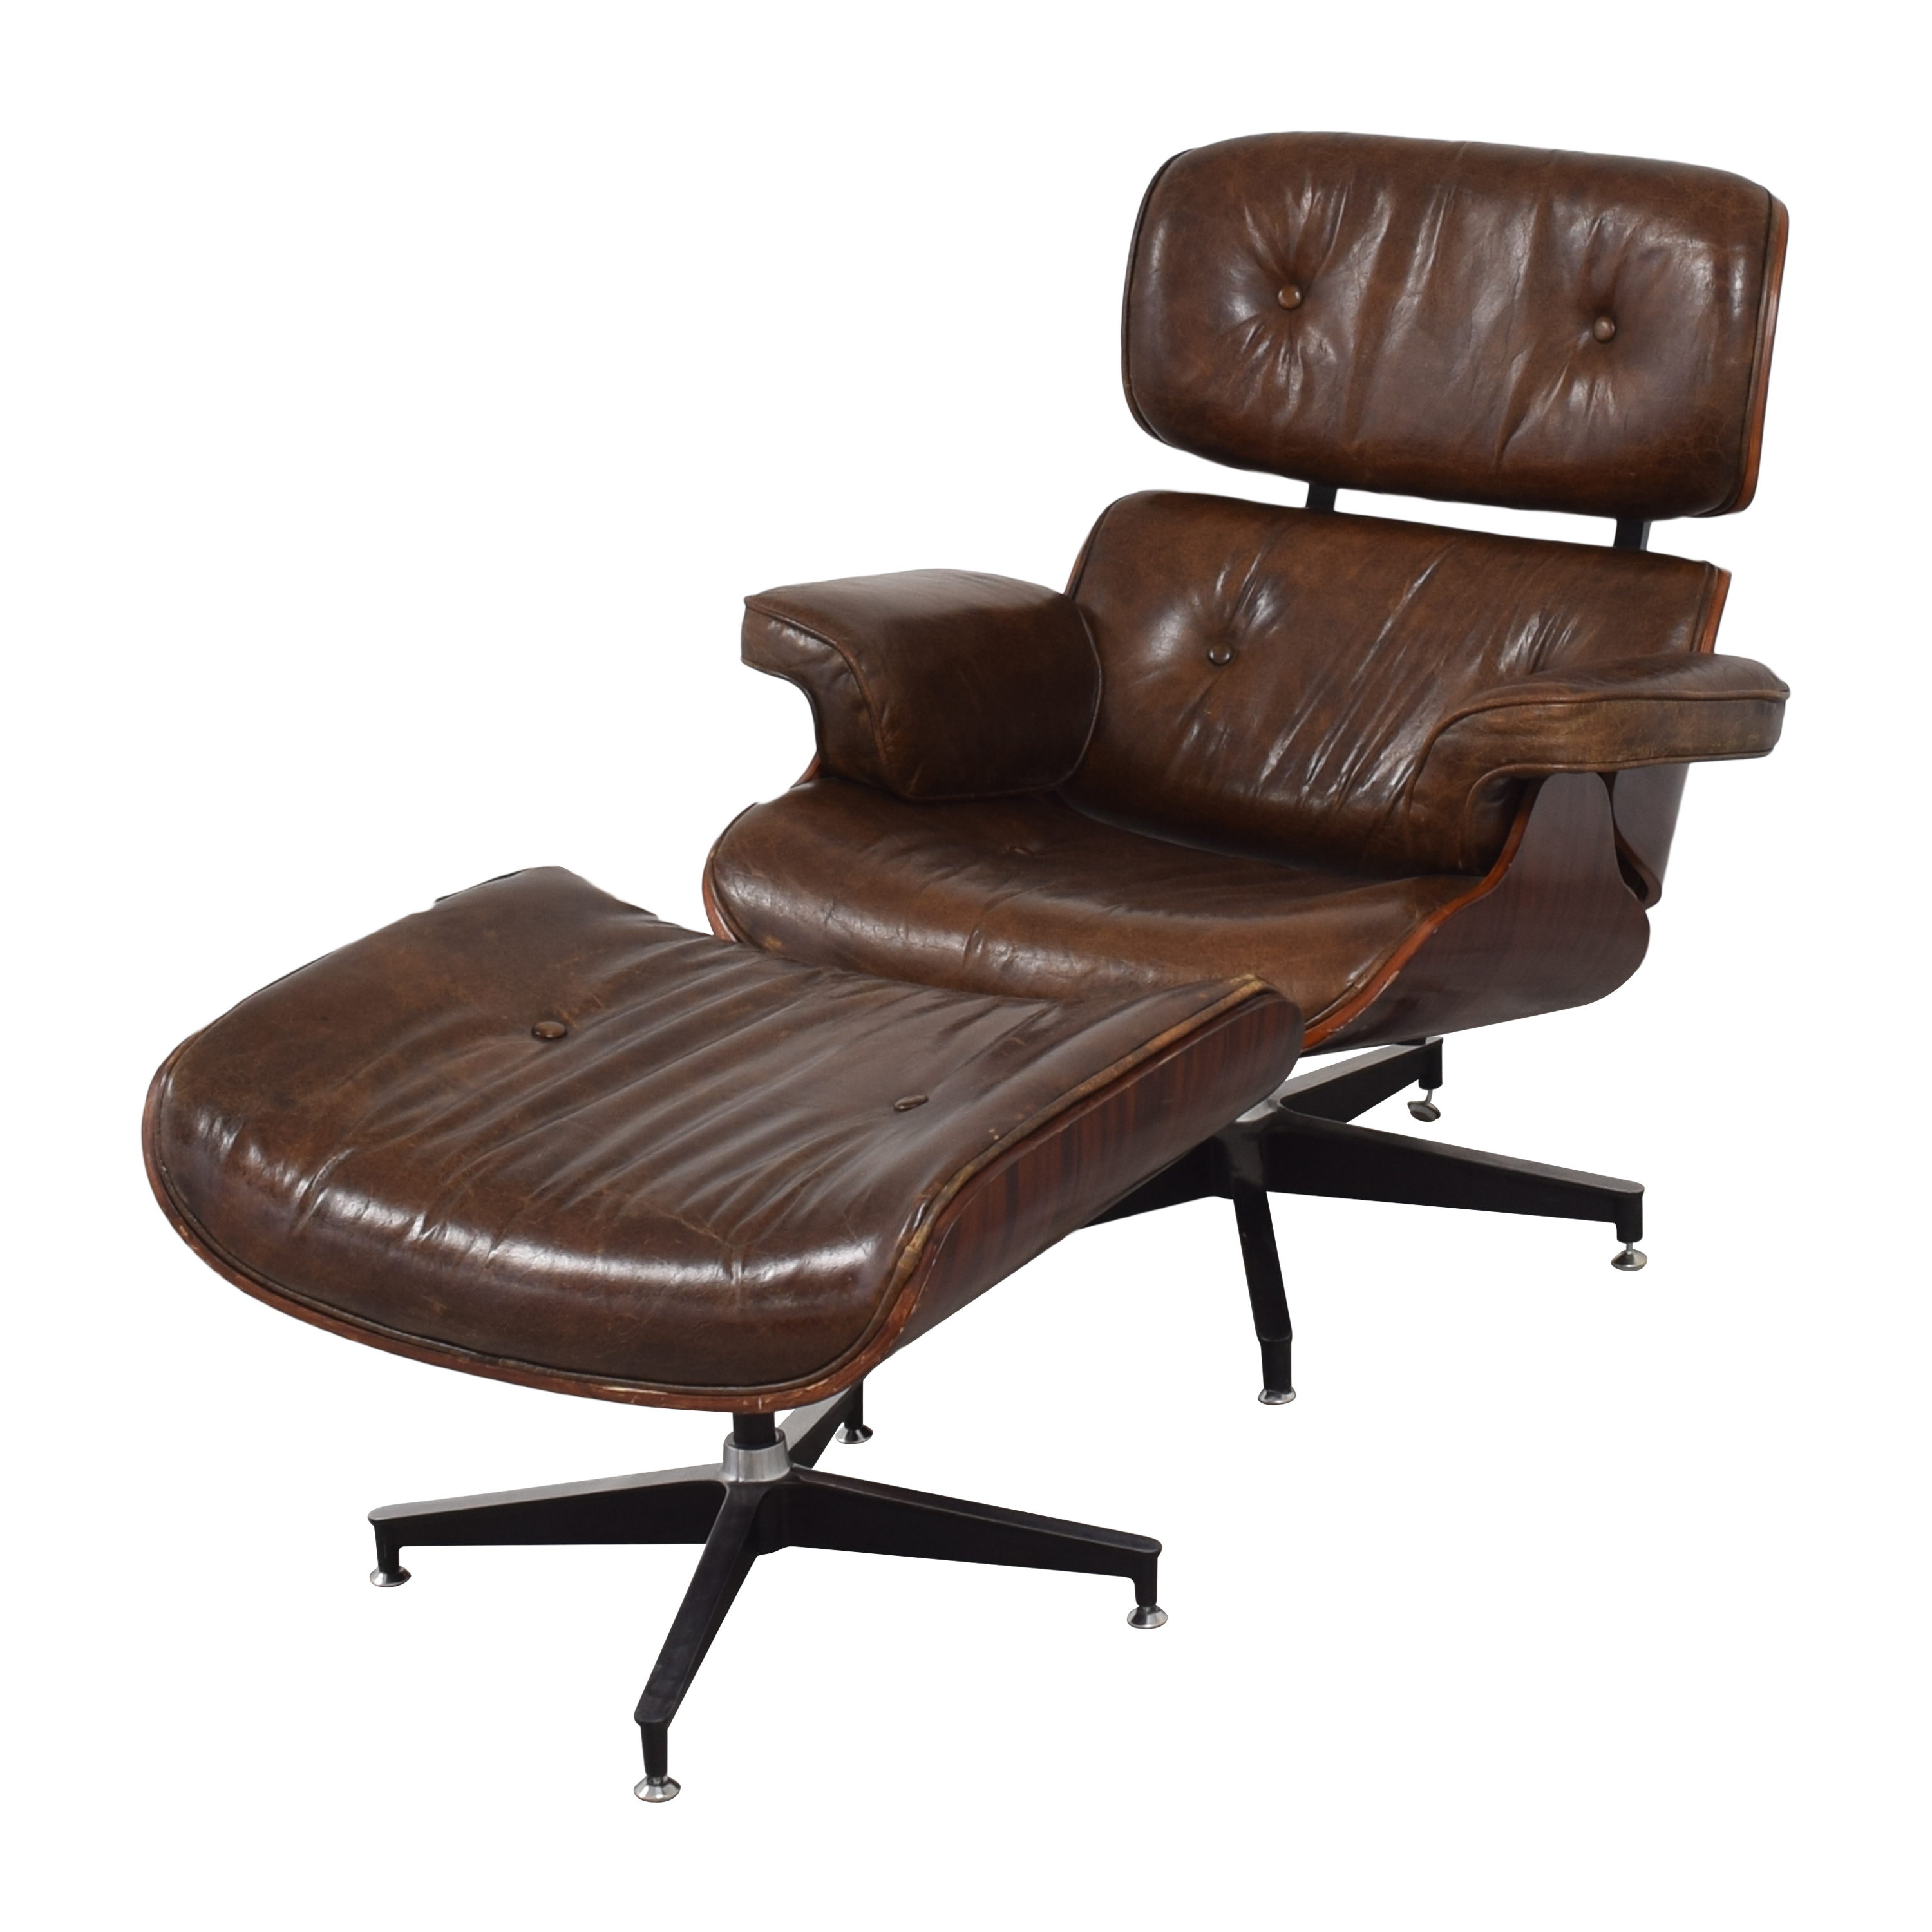 Eames-Style Chair with Ottoman / Accent Chairs